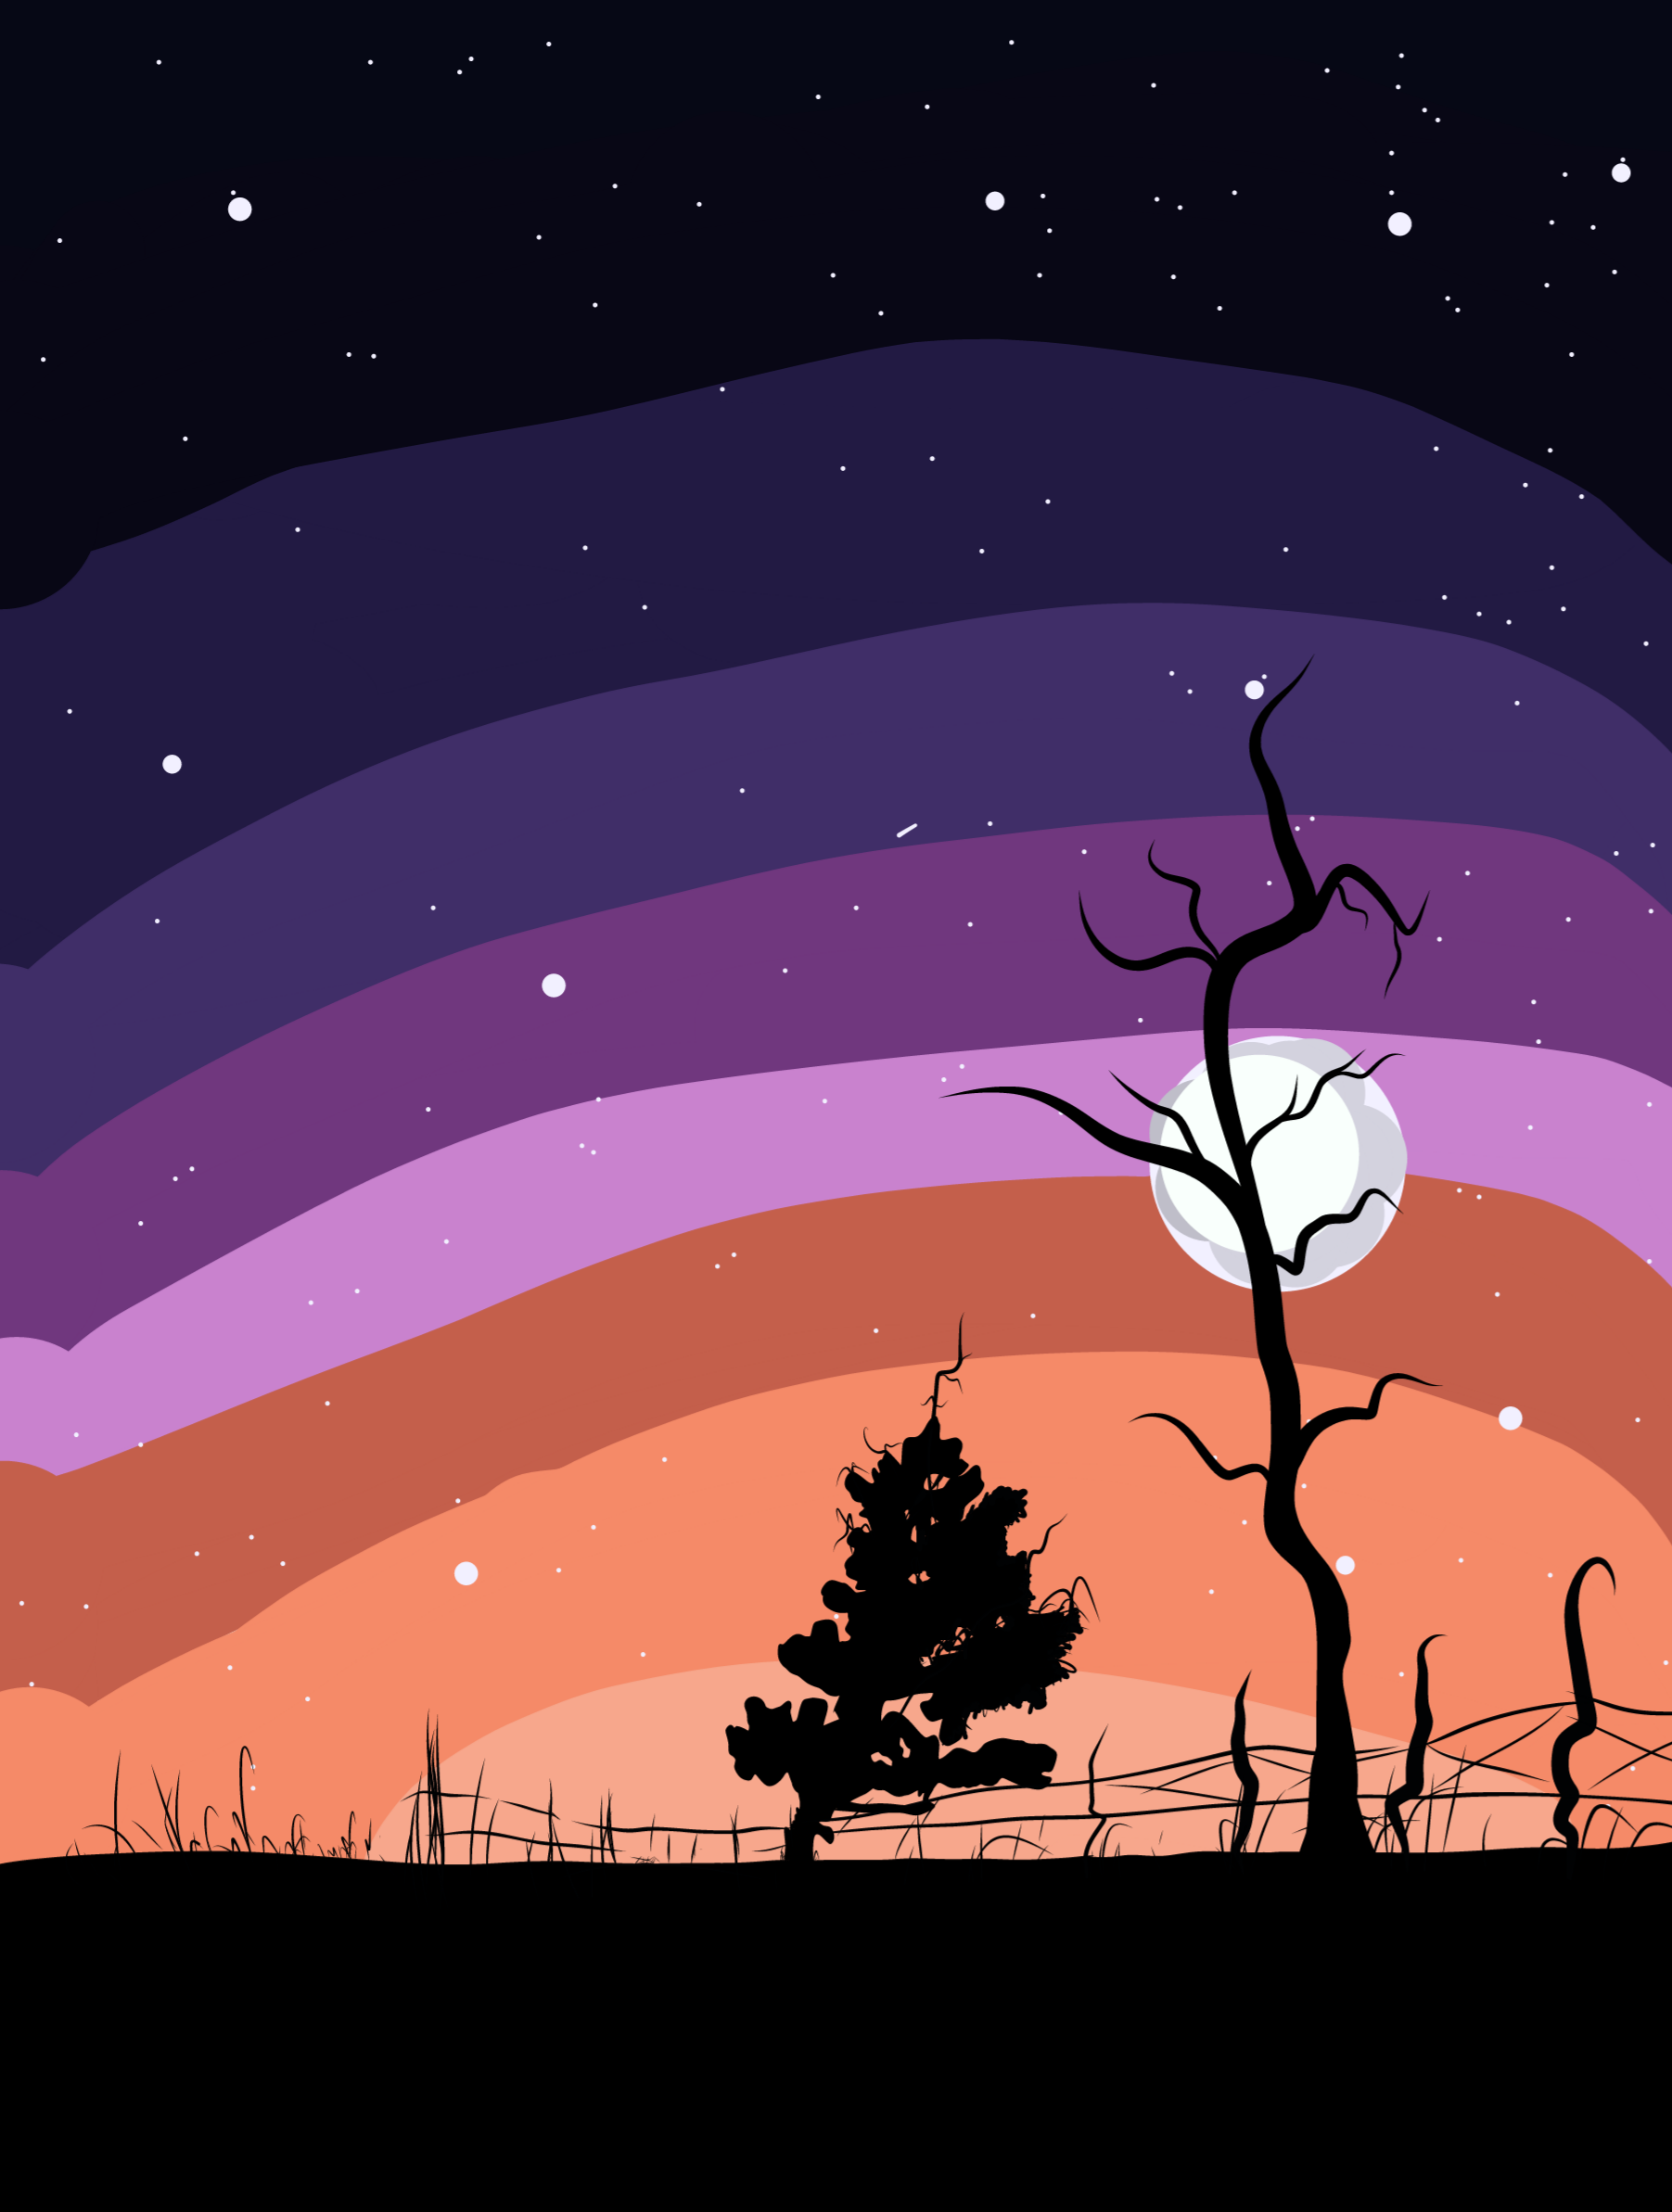 Illustration of a beautiful night scene